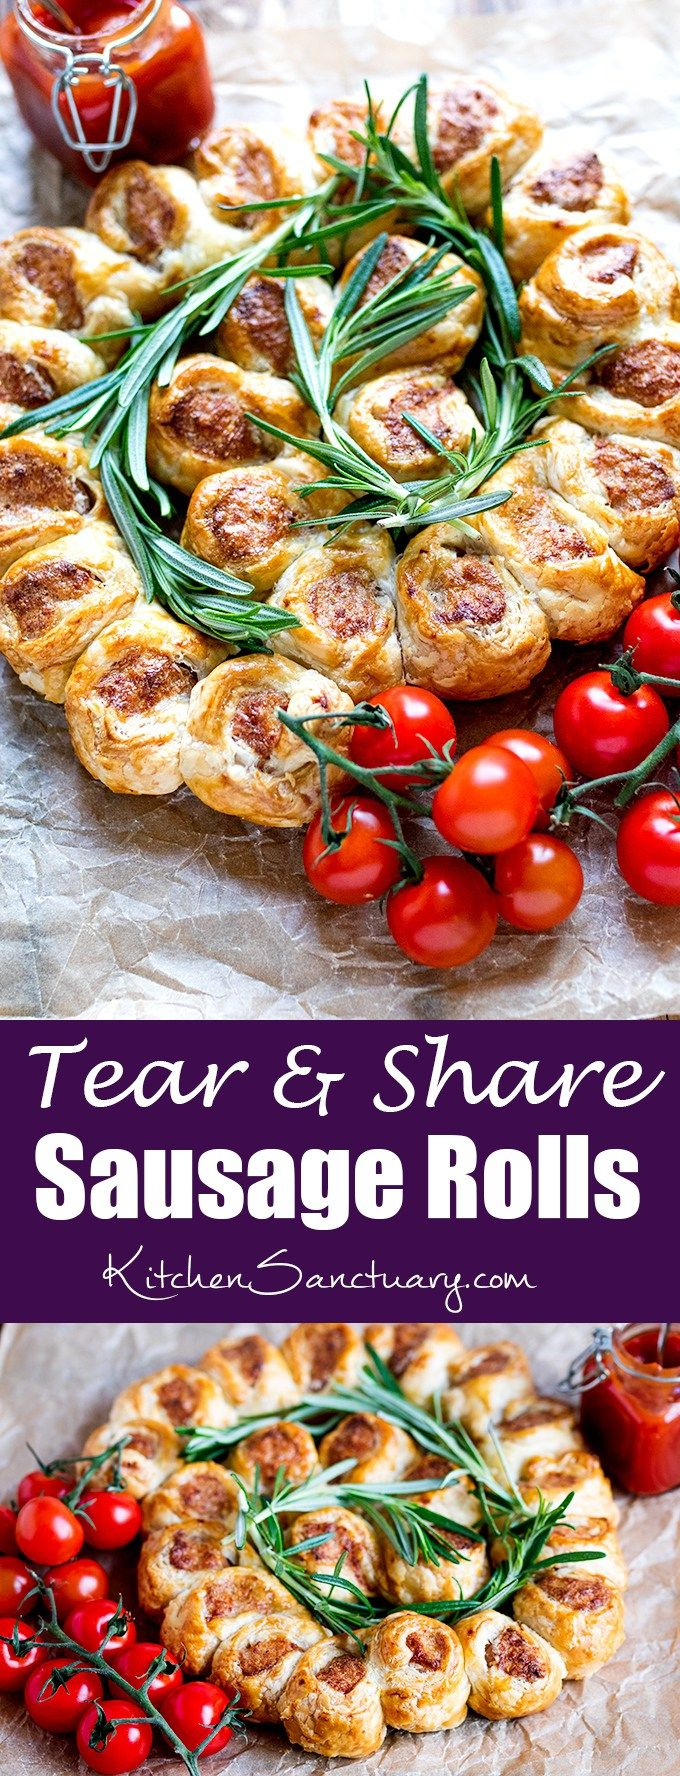 These 3 Ingredient Sausage Rolls Are So Simple And Quick